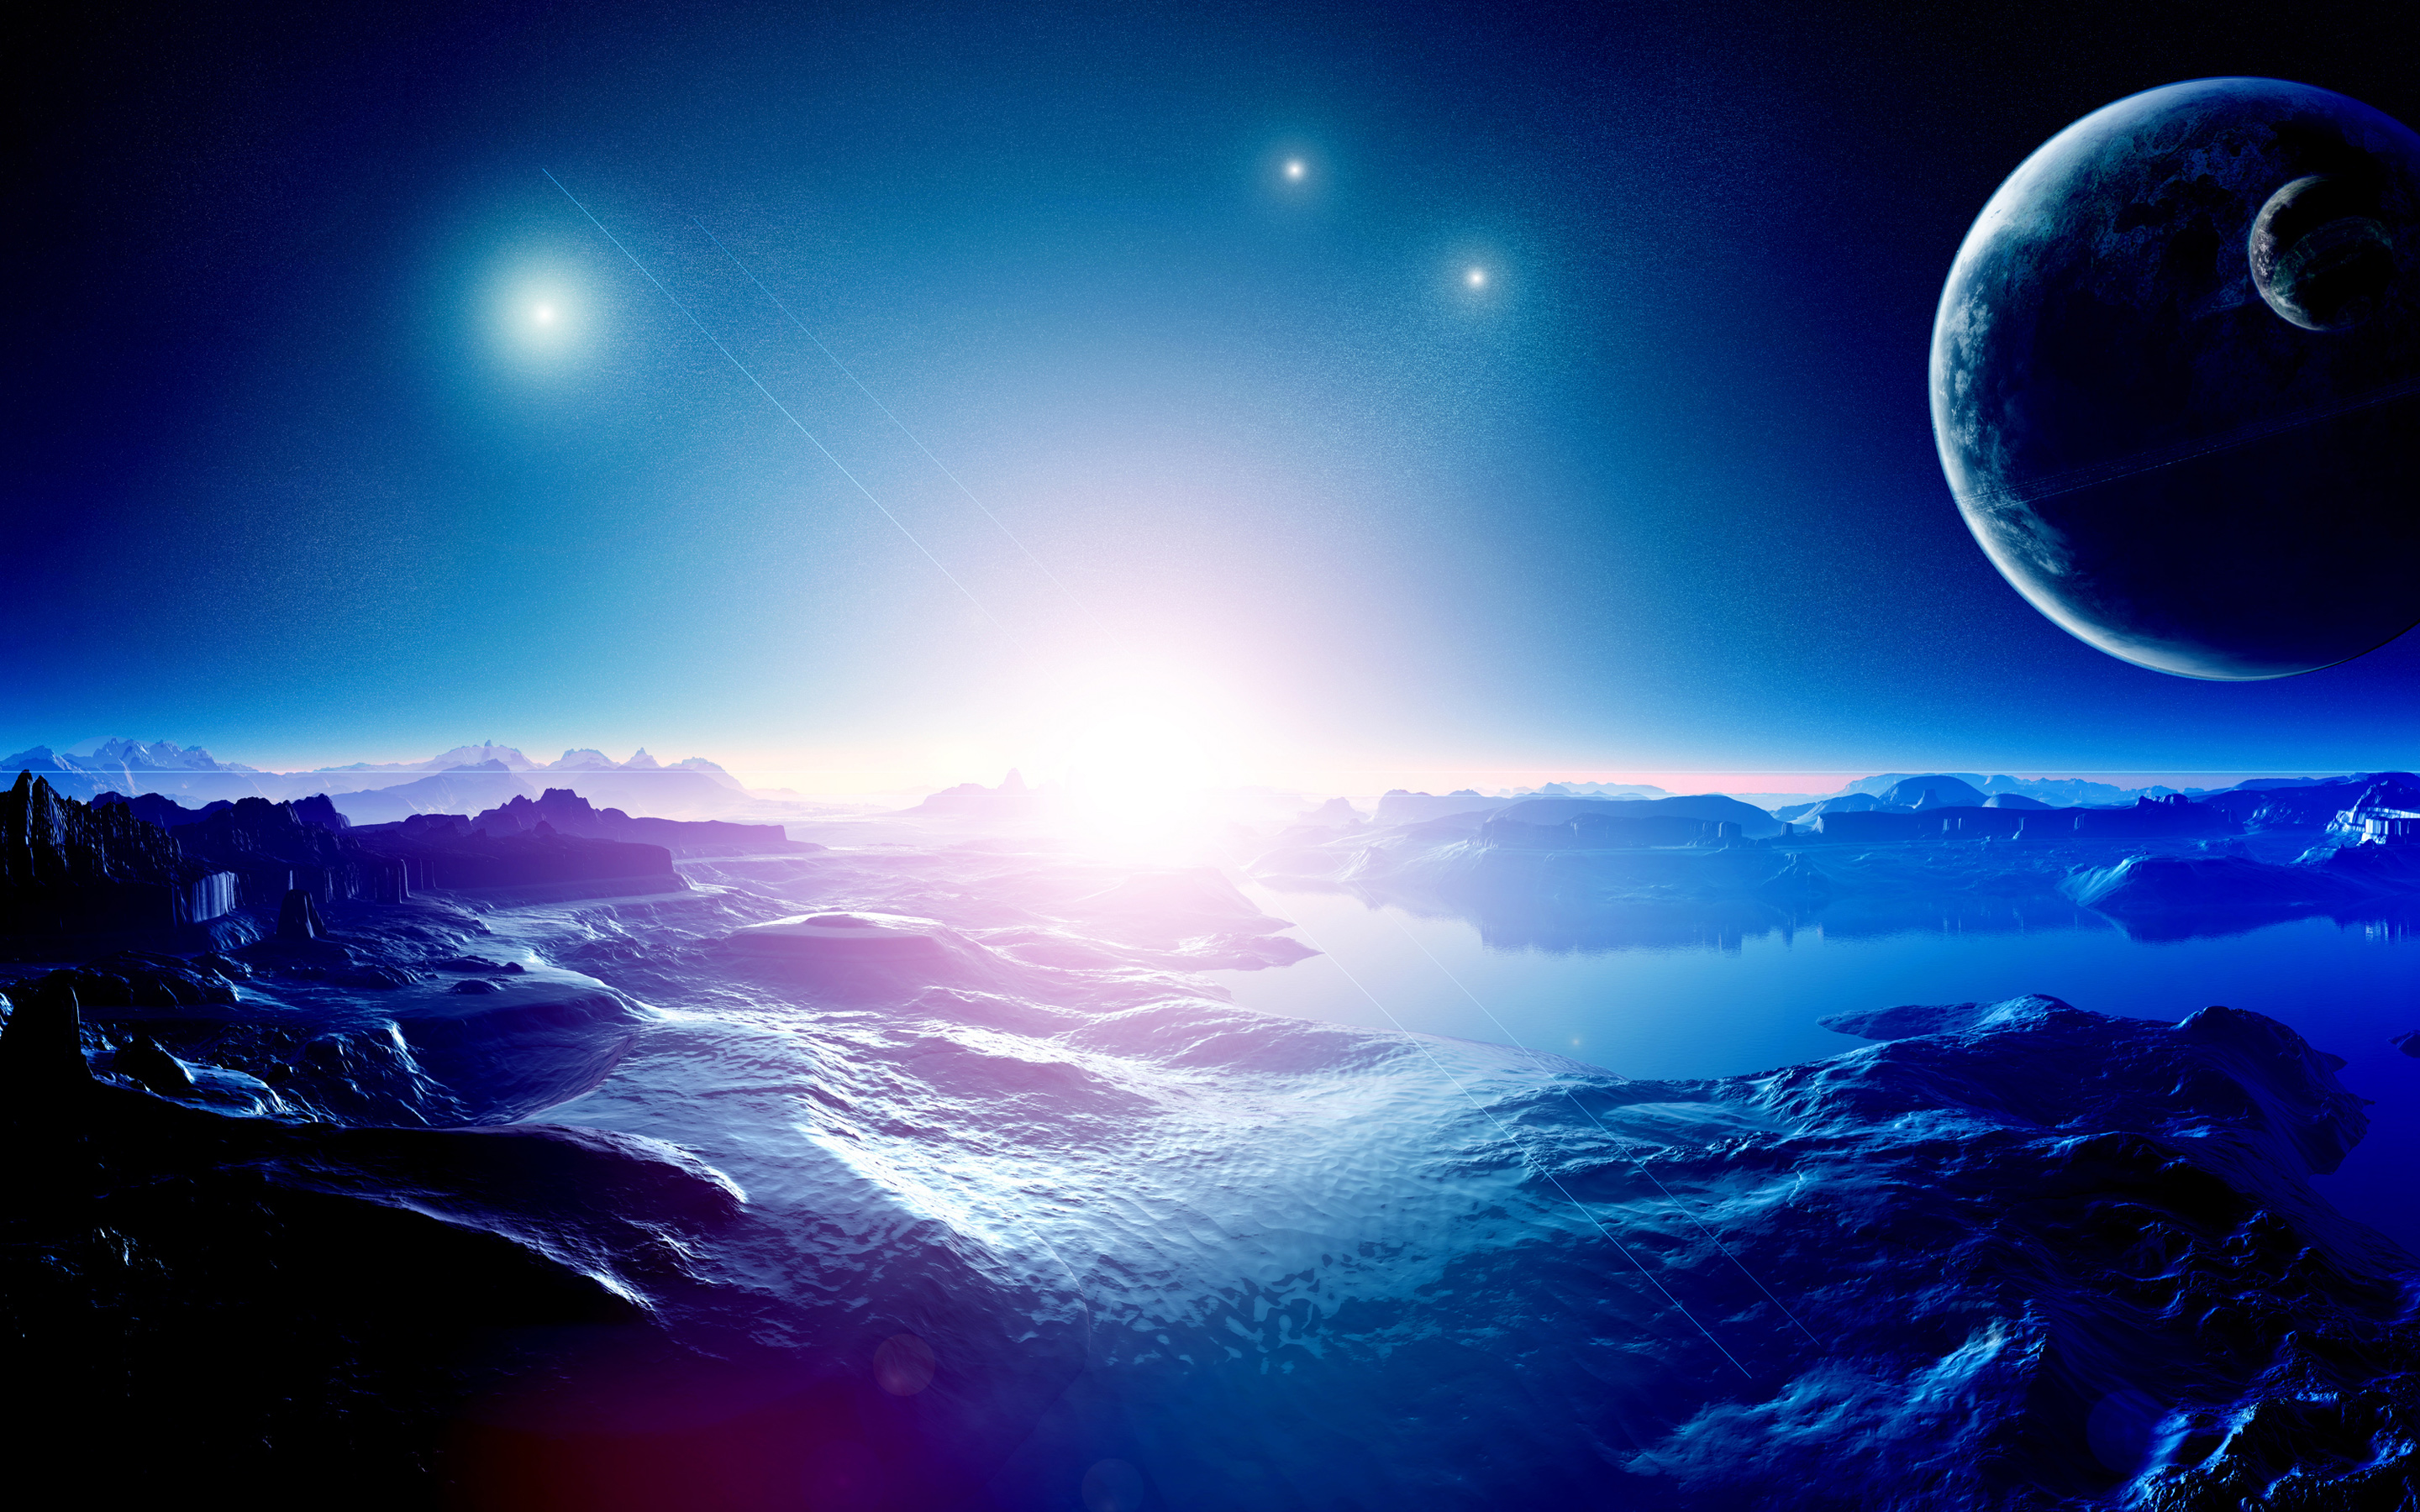 Space Planets Blue Mountains HD Wallpaper 2880x1800